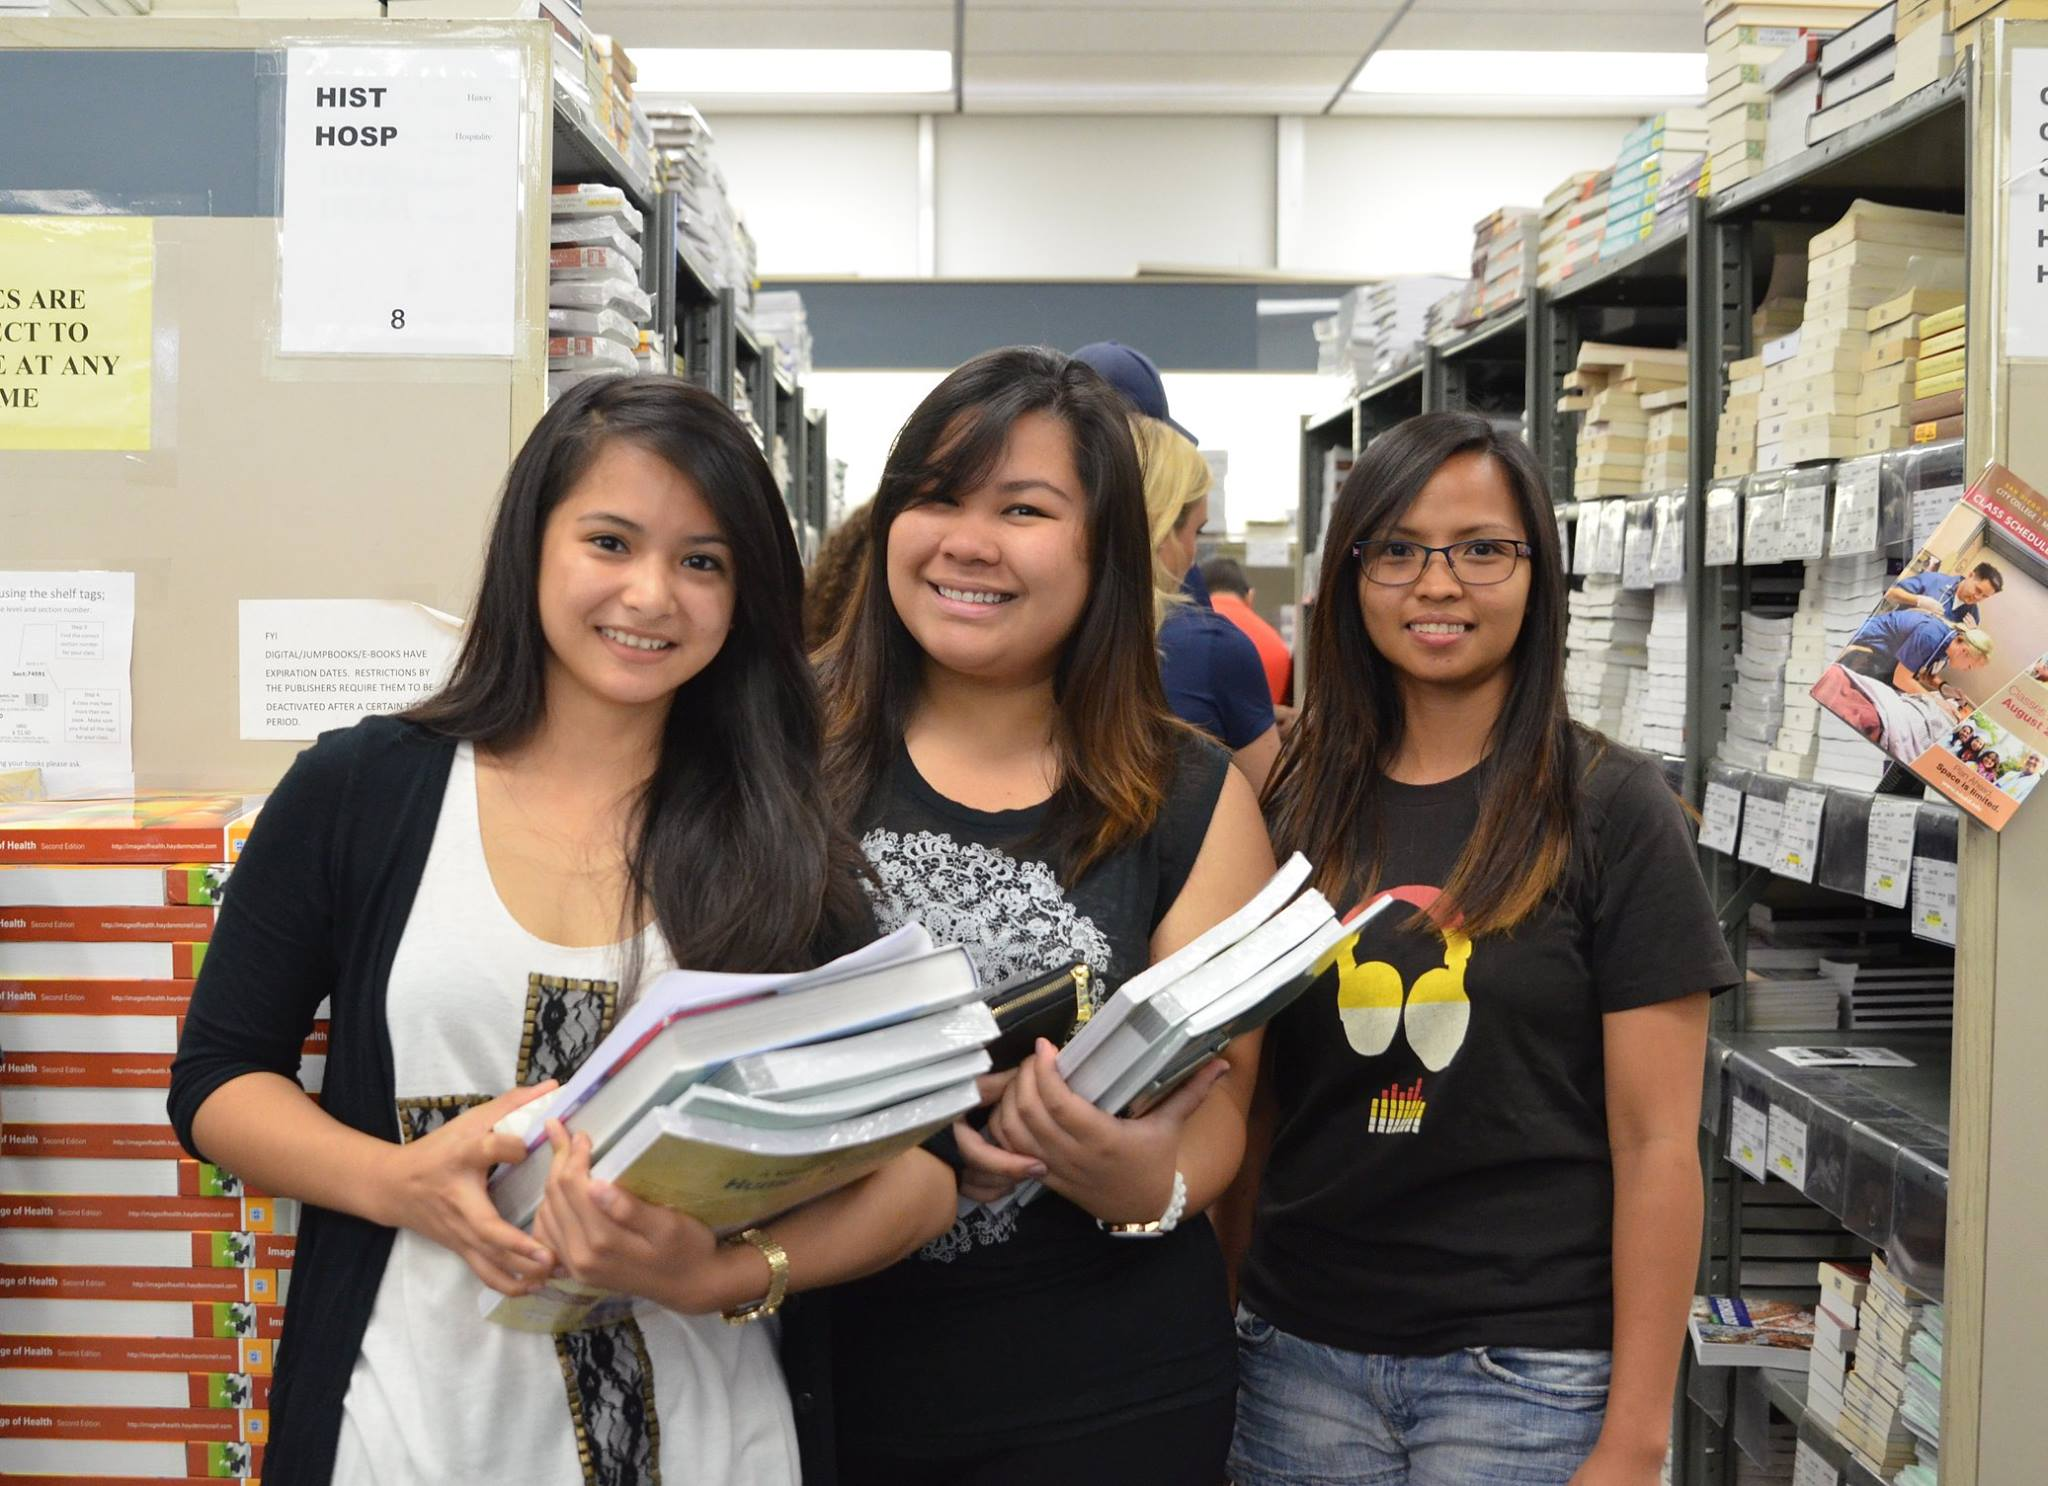 Students at the San Diego Mesa College bookstore